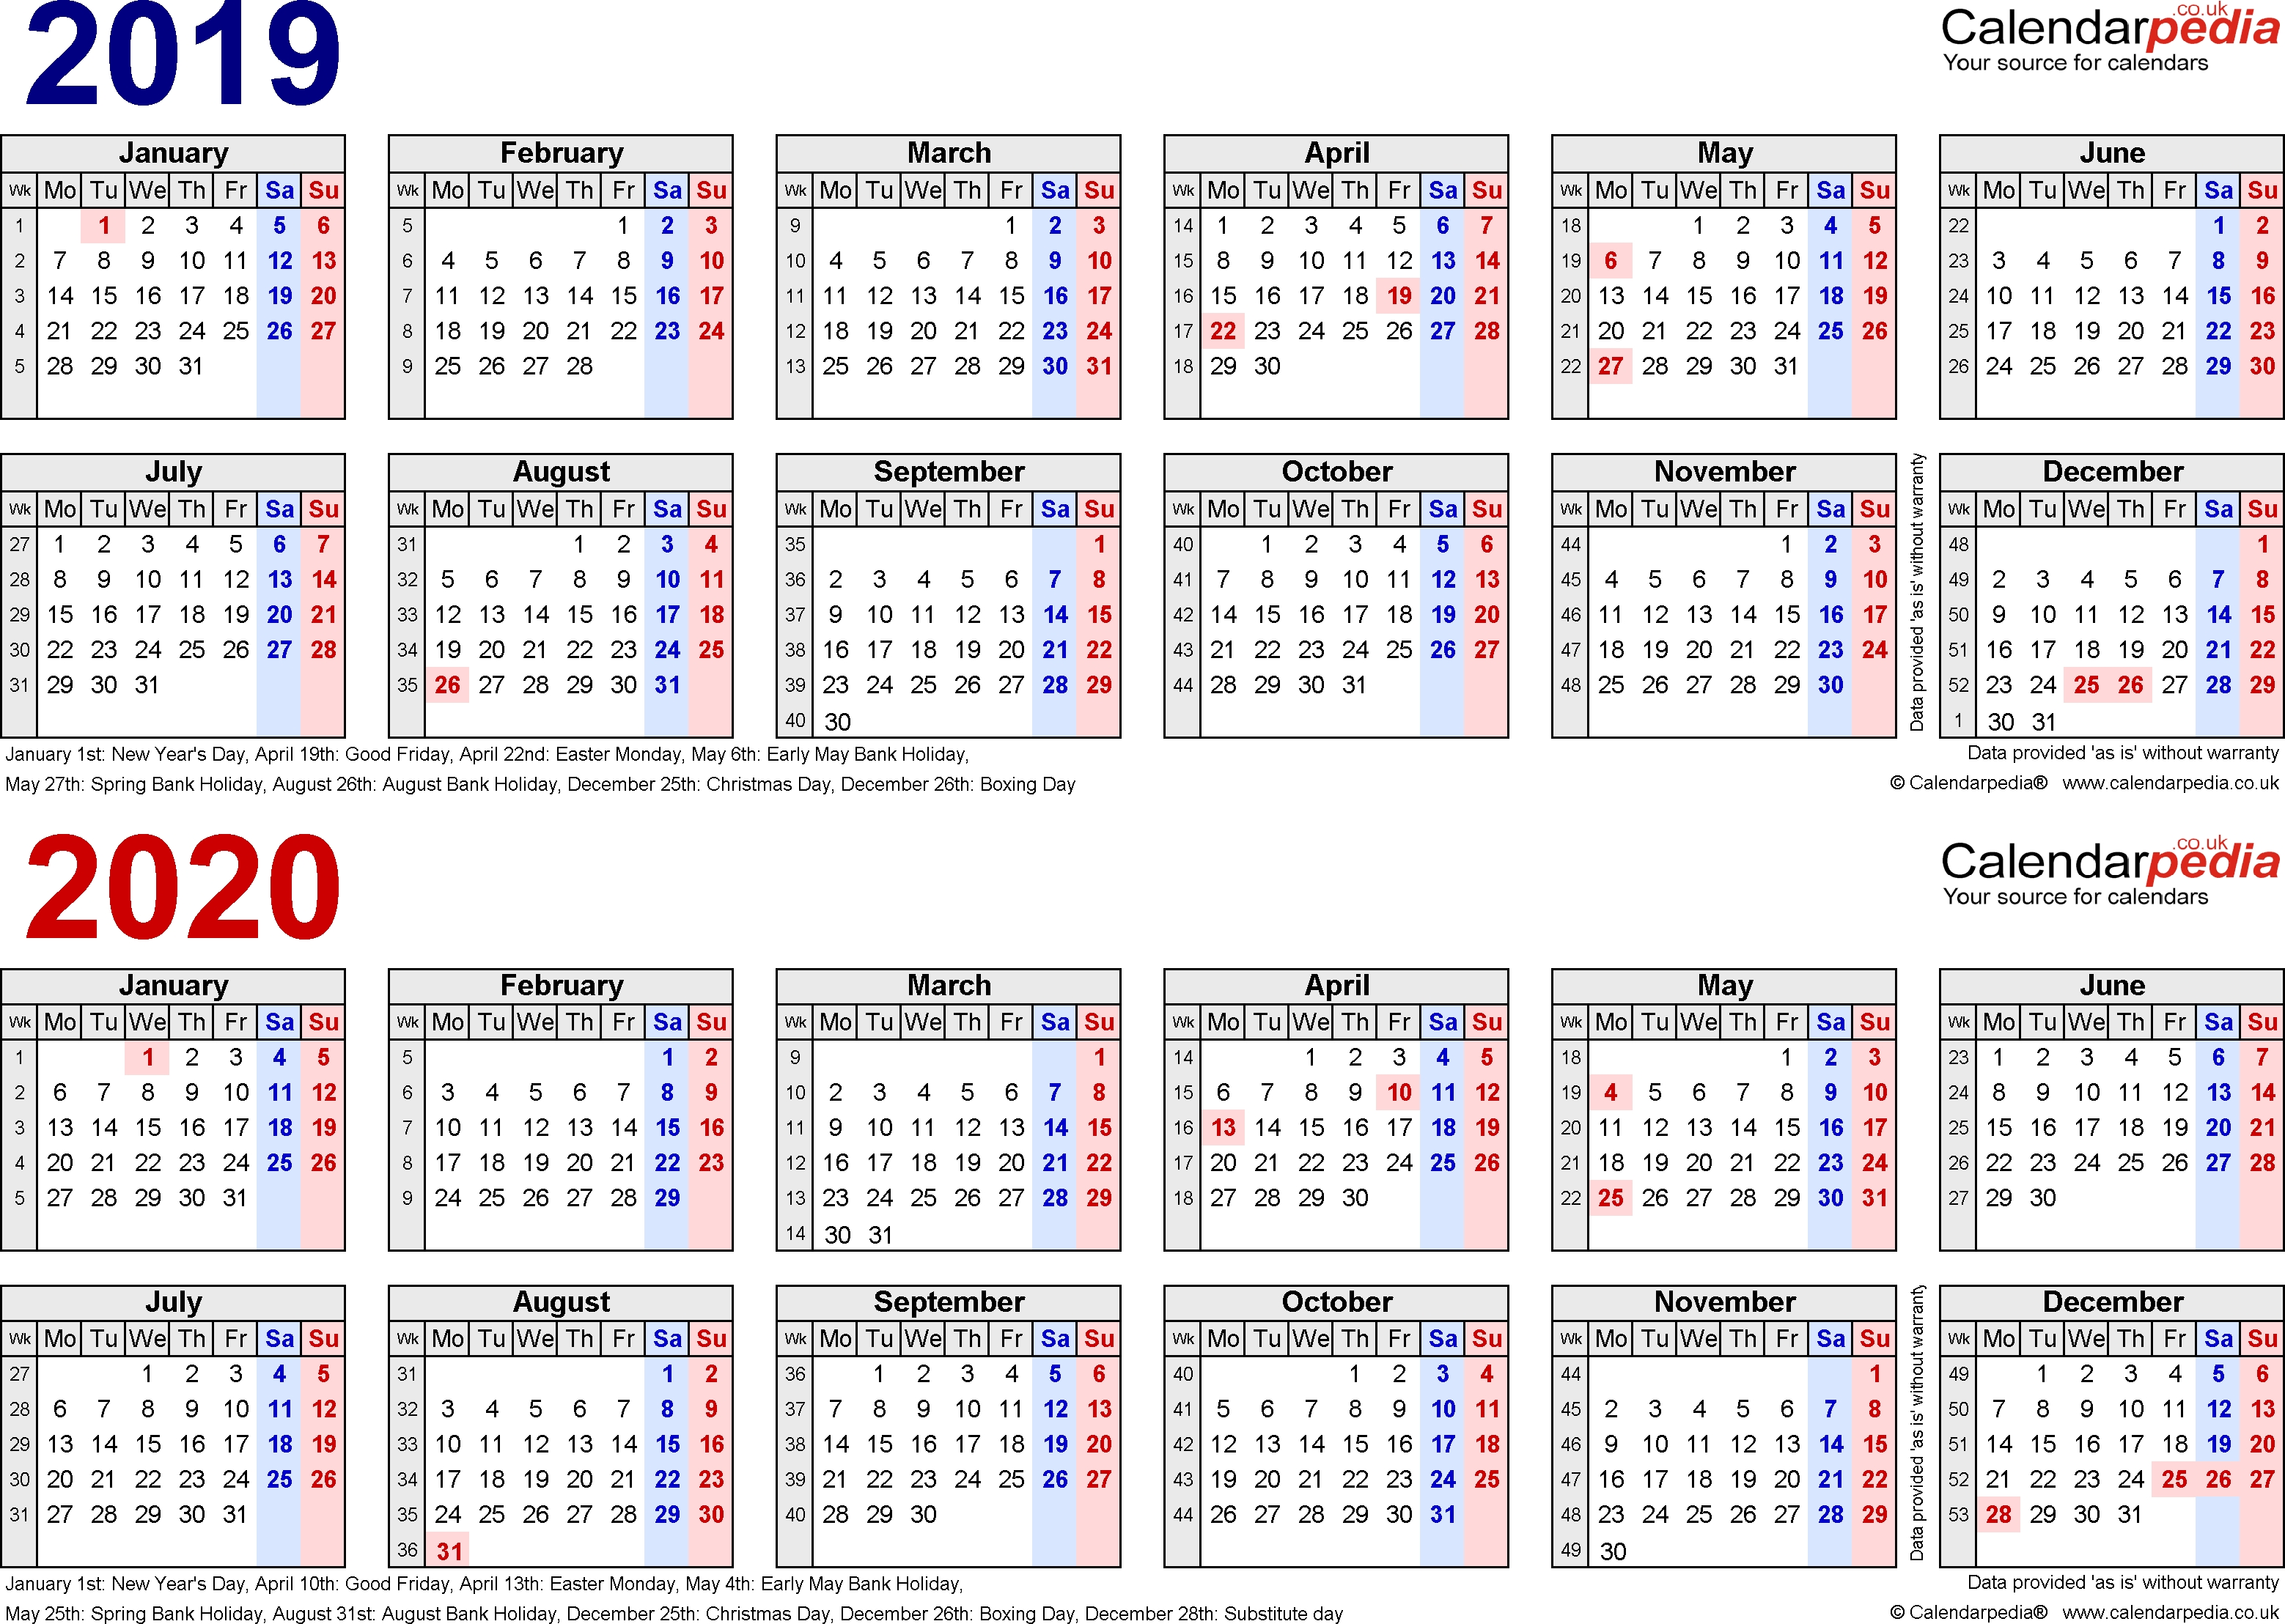 Two Year Calendars For 2019 & 2020 (Uk) For Word Calendar 2019 And 2020